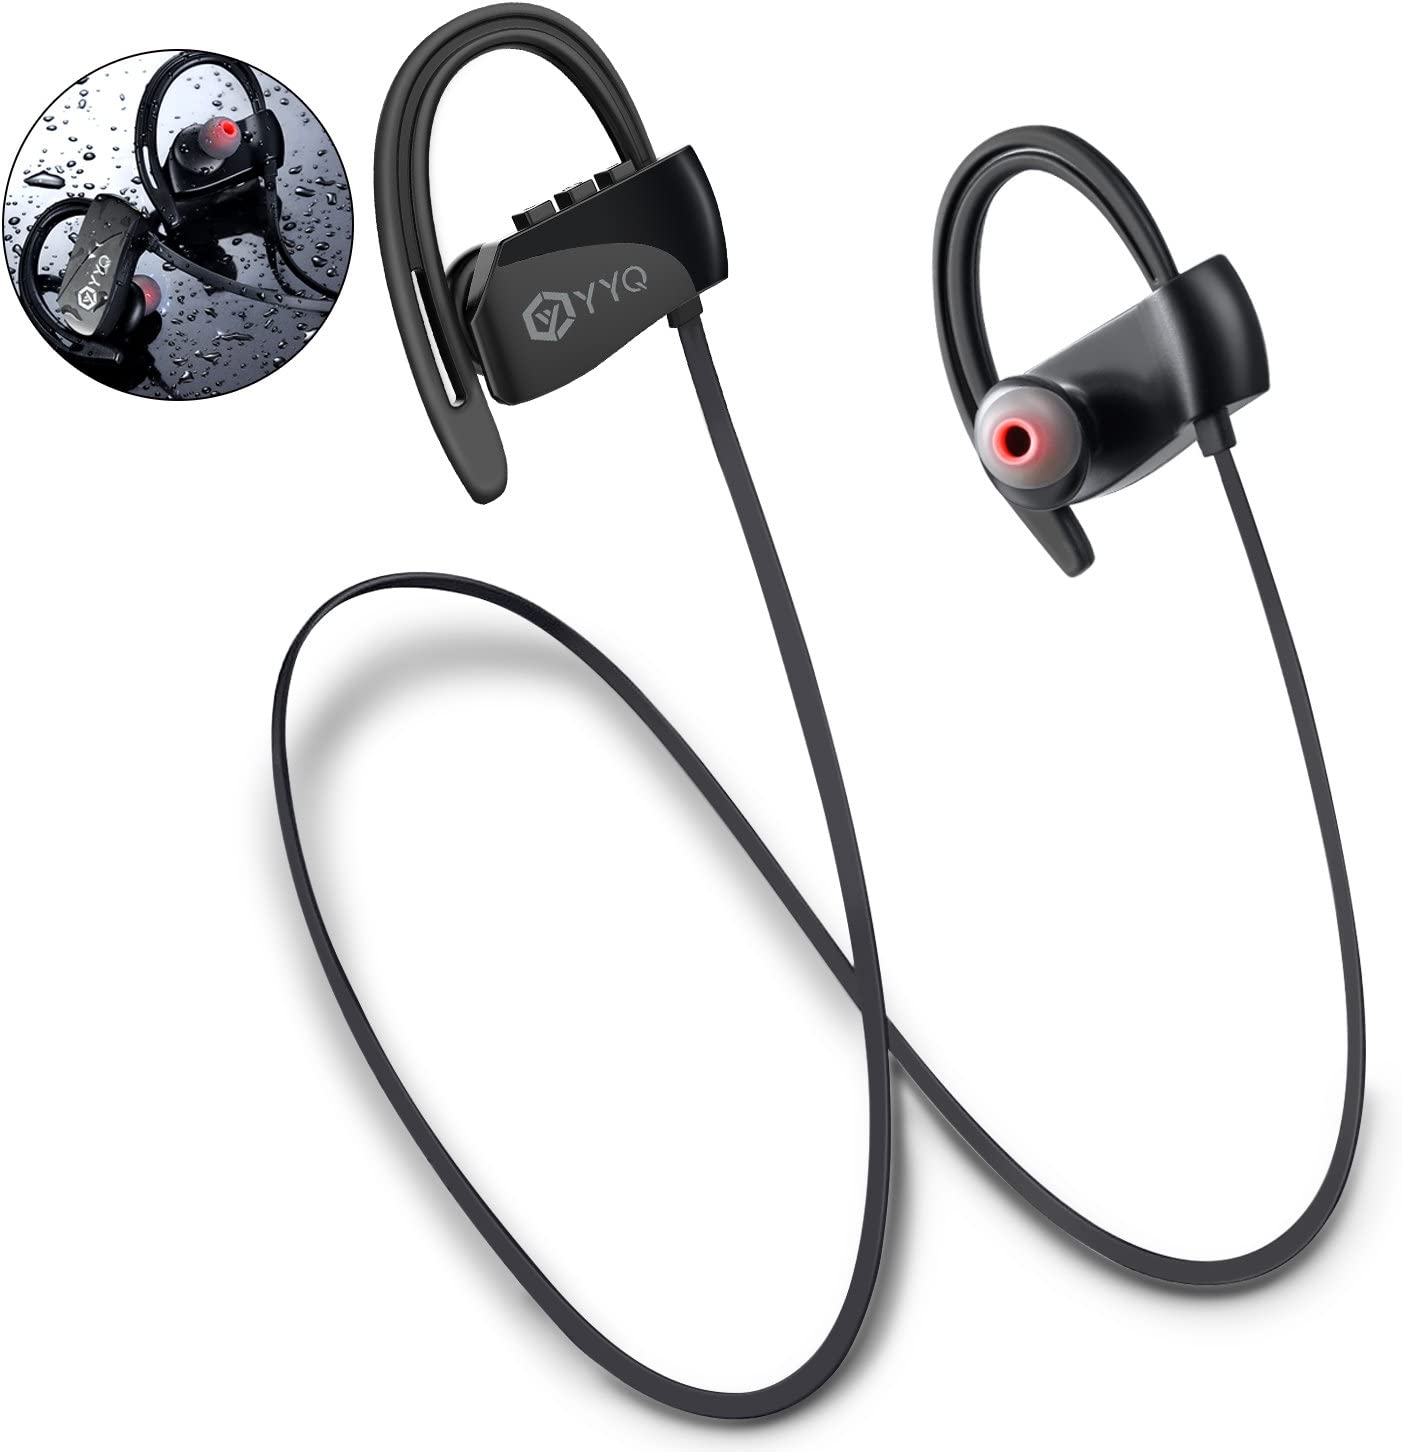 Bluetooth Headphones, M3 Wireless Sports Headset with Mic Waterproof Earphones HD Stereo Sweatproof Earbuds with Carring Case for Gym Running Workout 12 Hour Noise Cancelling (Black)